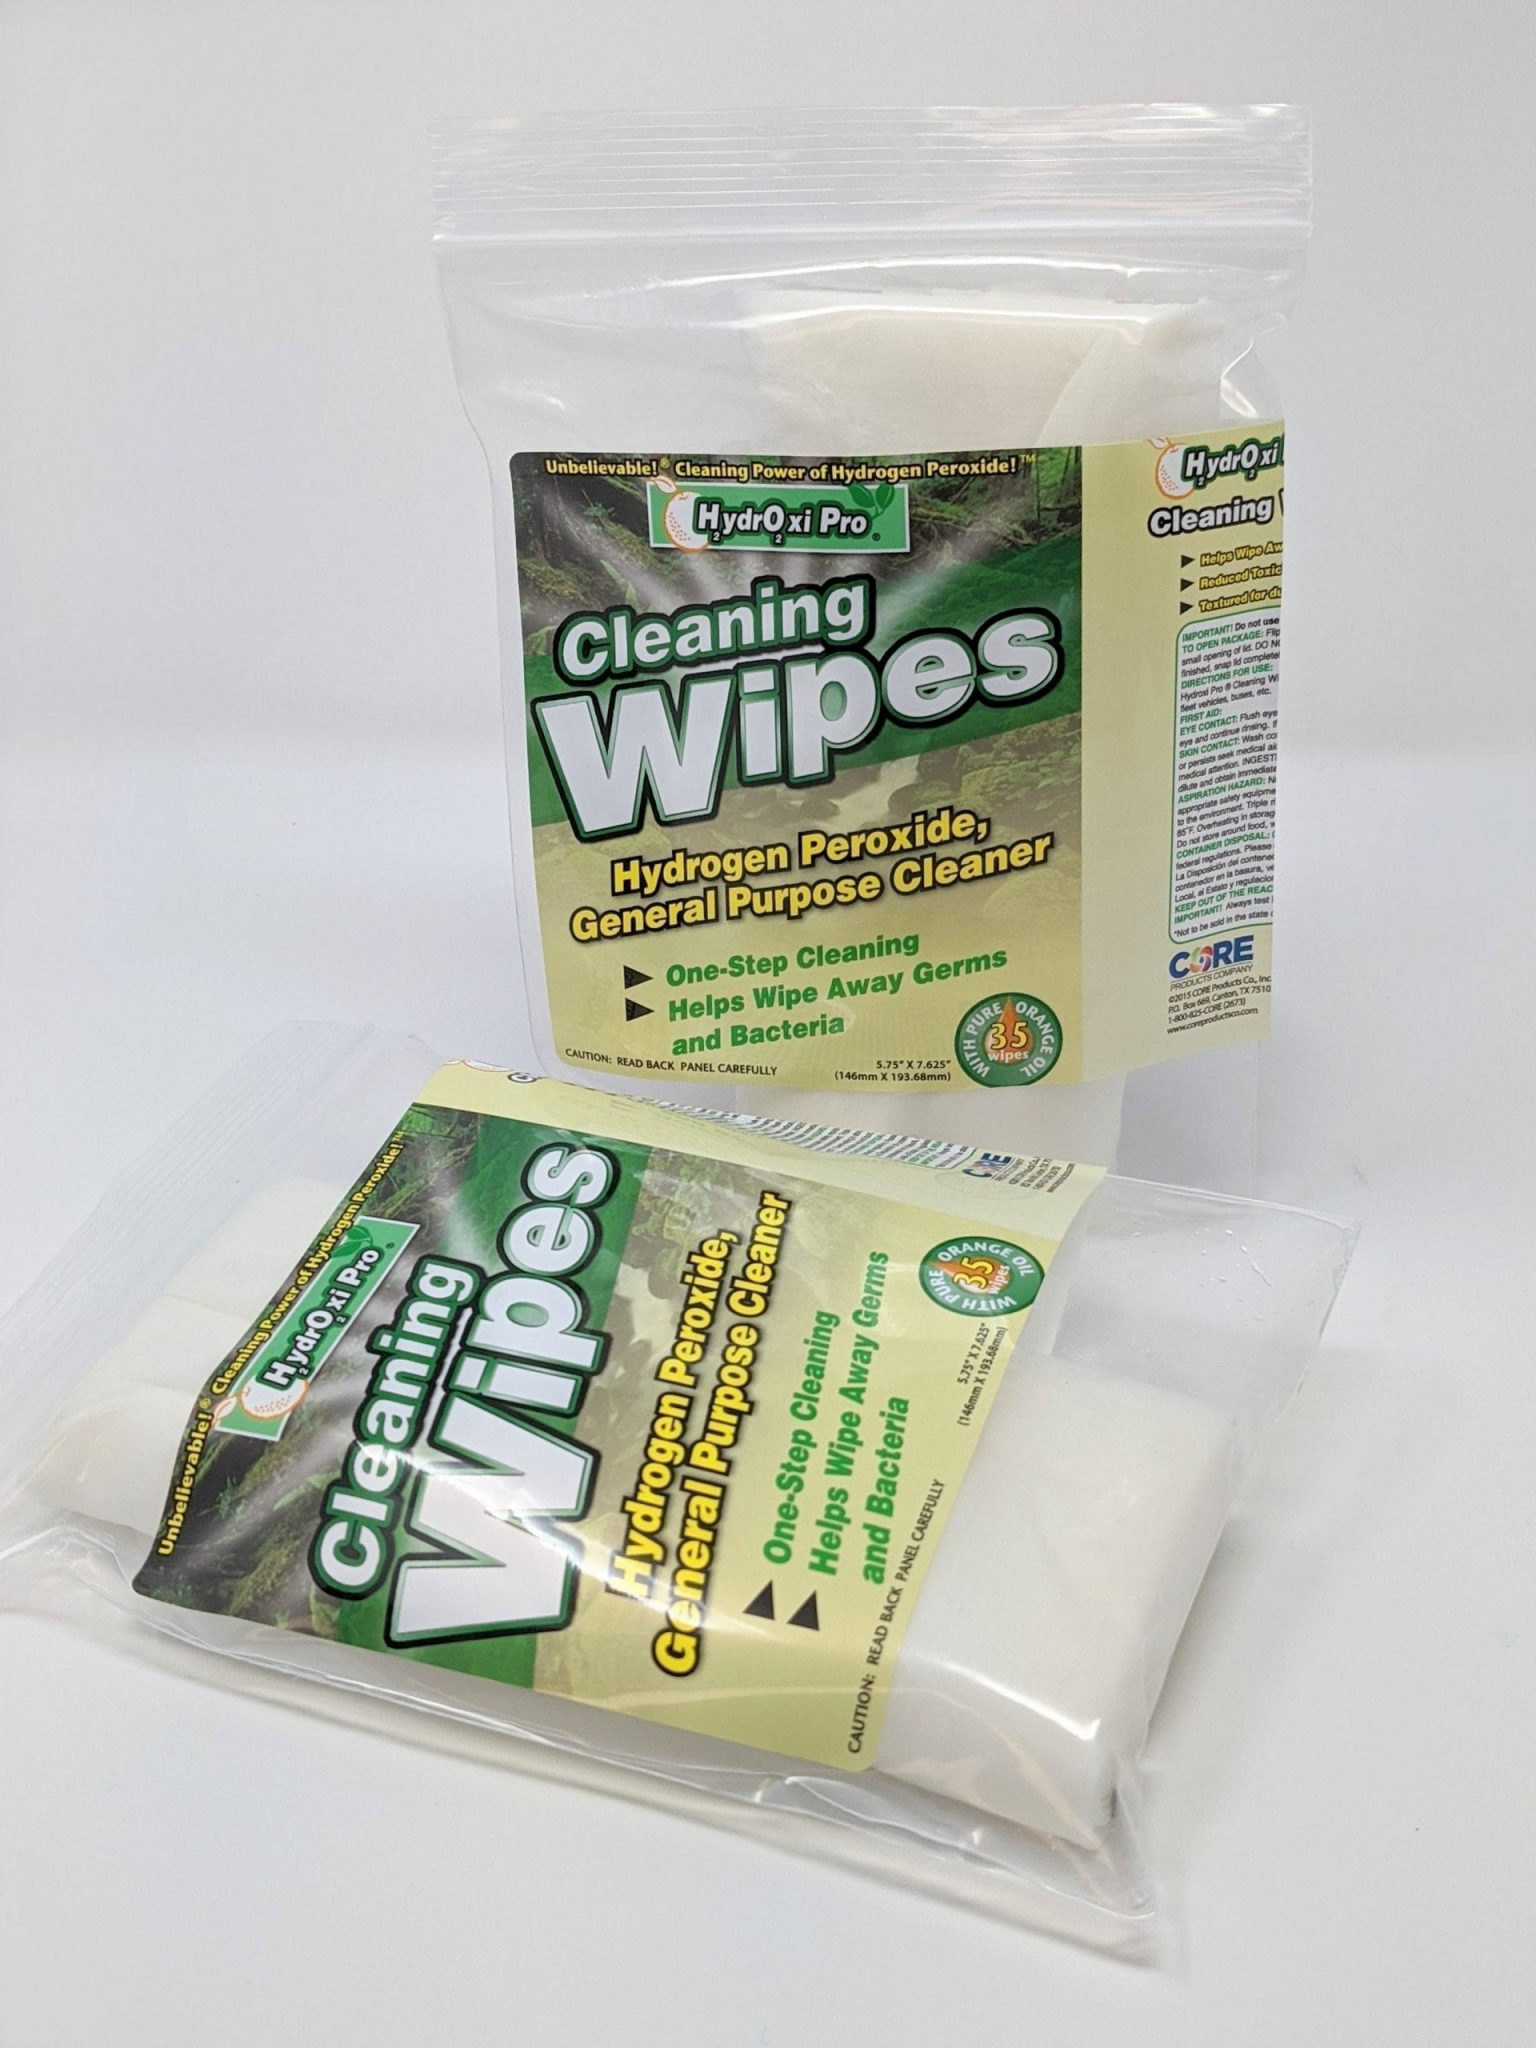 HydrOxi Pro® Hydrogen Peroxide General Purpose Cleaning Wipes